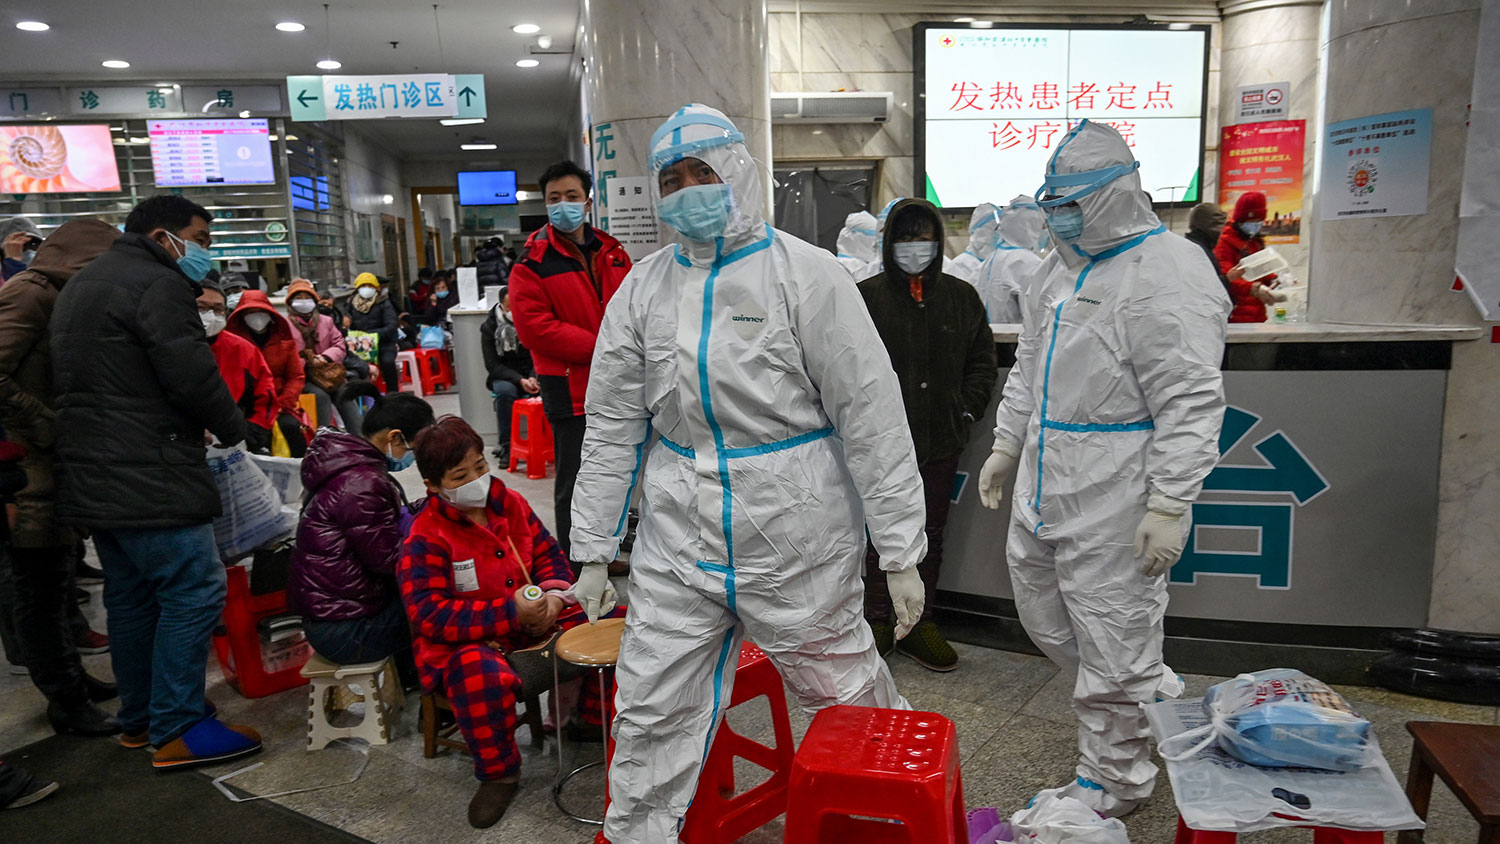 On January 25, 2020, Wuhan Red Cross Hospital waited for patients. (AFP)